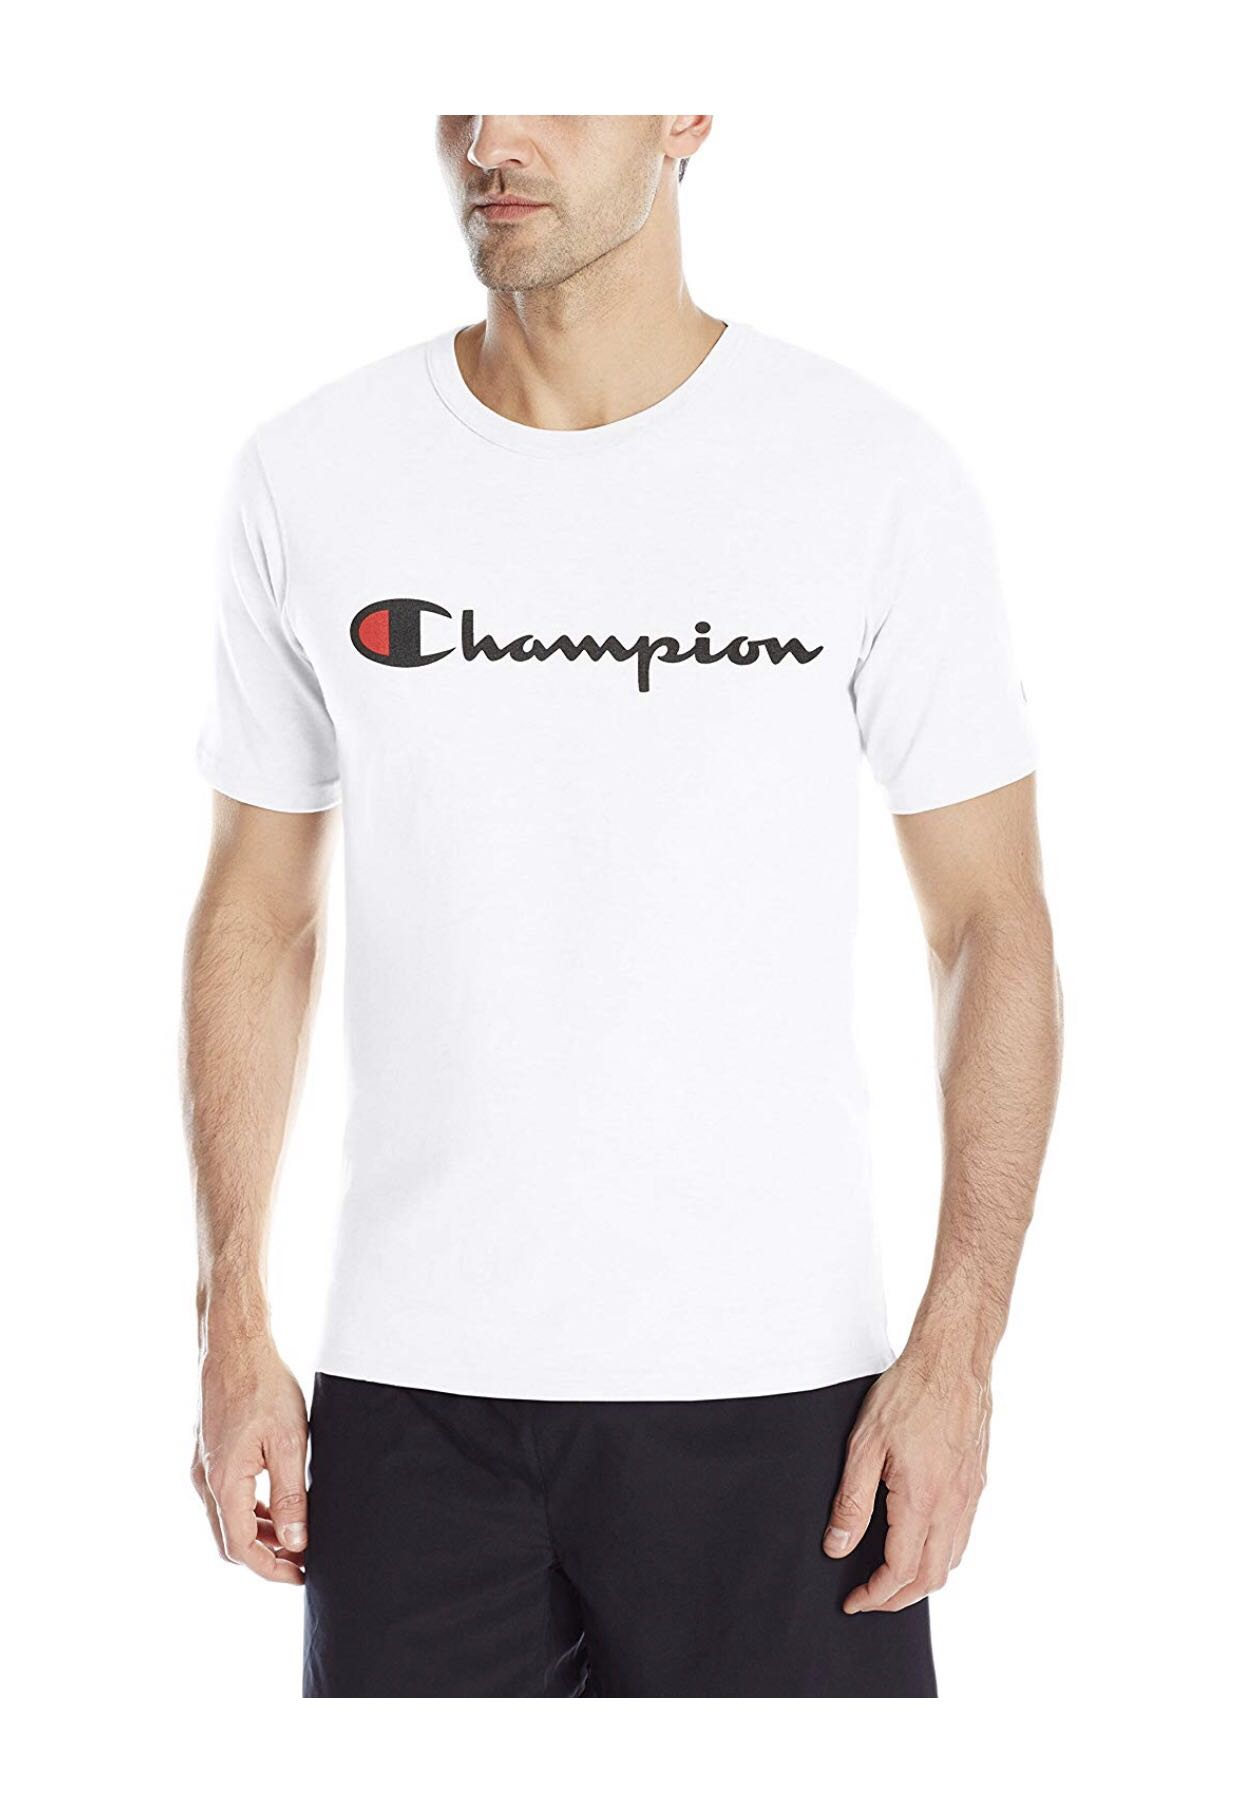 66289ea20 Champion LIFE Men's Heritage Tee, Men's Fashion, Clothes, Tops on ...